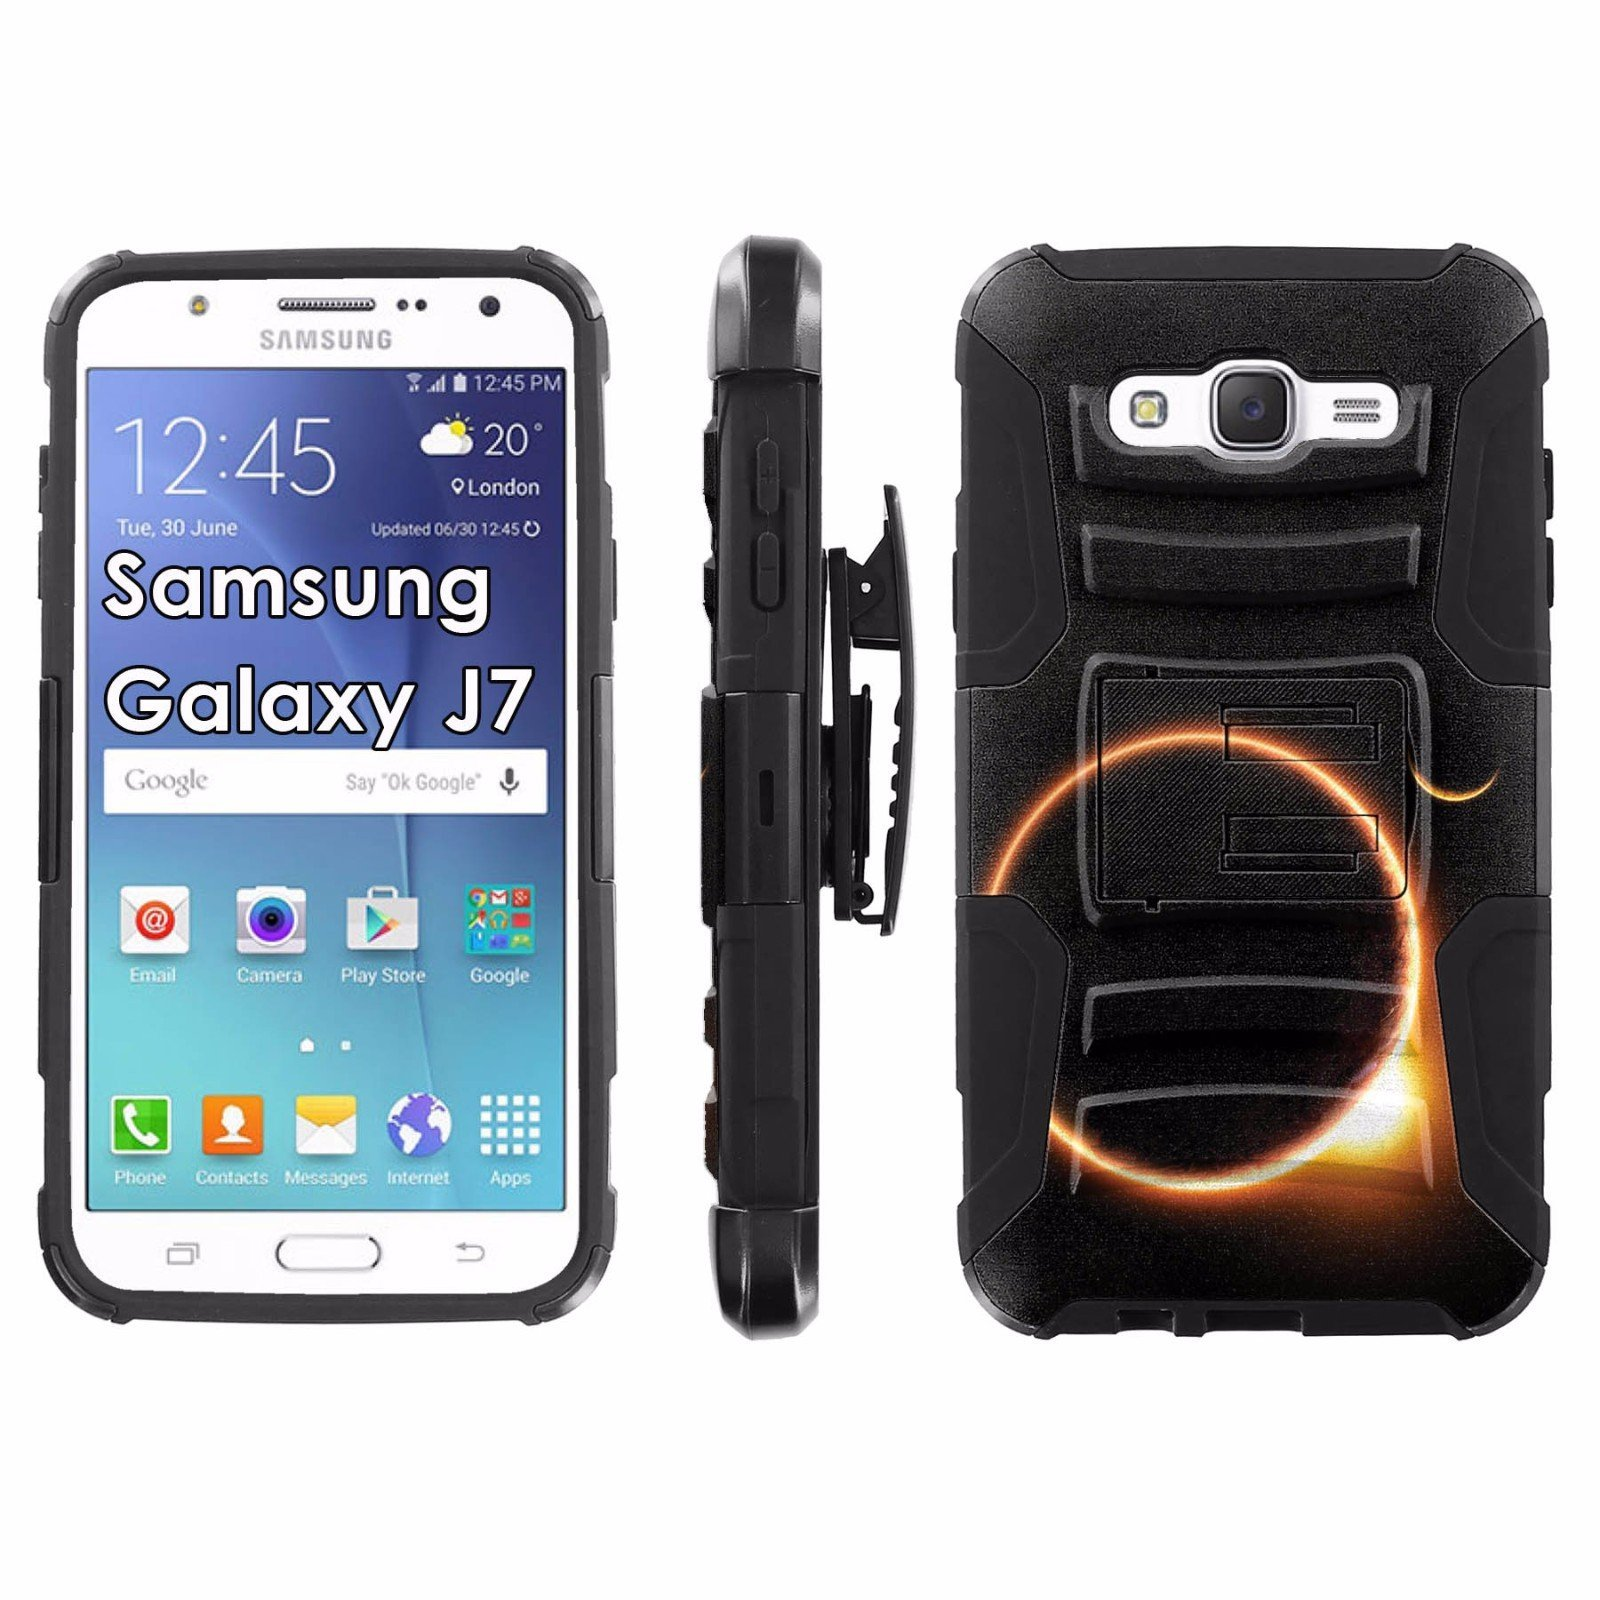 Samsung Galaxy J7 Phone Cover, Solar Eclipse- Black Blitz Hybrid Armor Phone Case for [Samsung Galaxy J7] with [Kickstand and Holster]